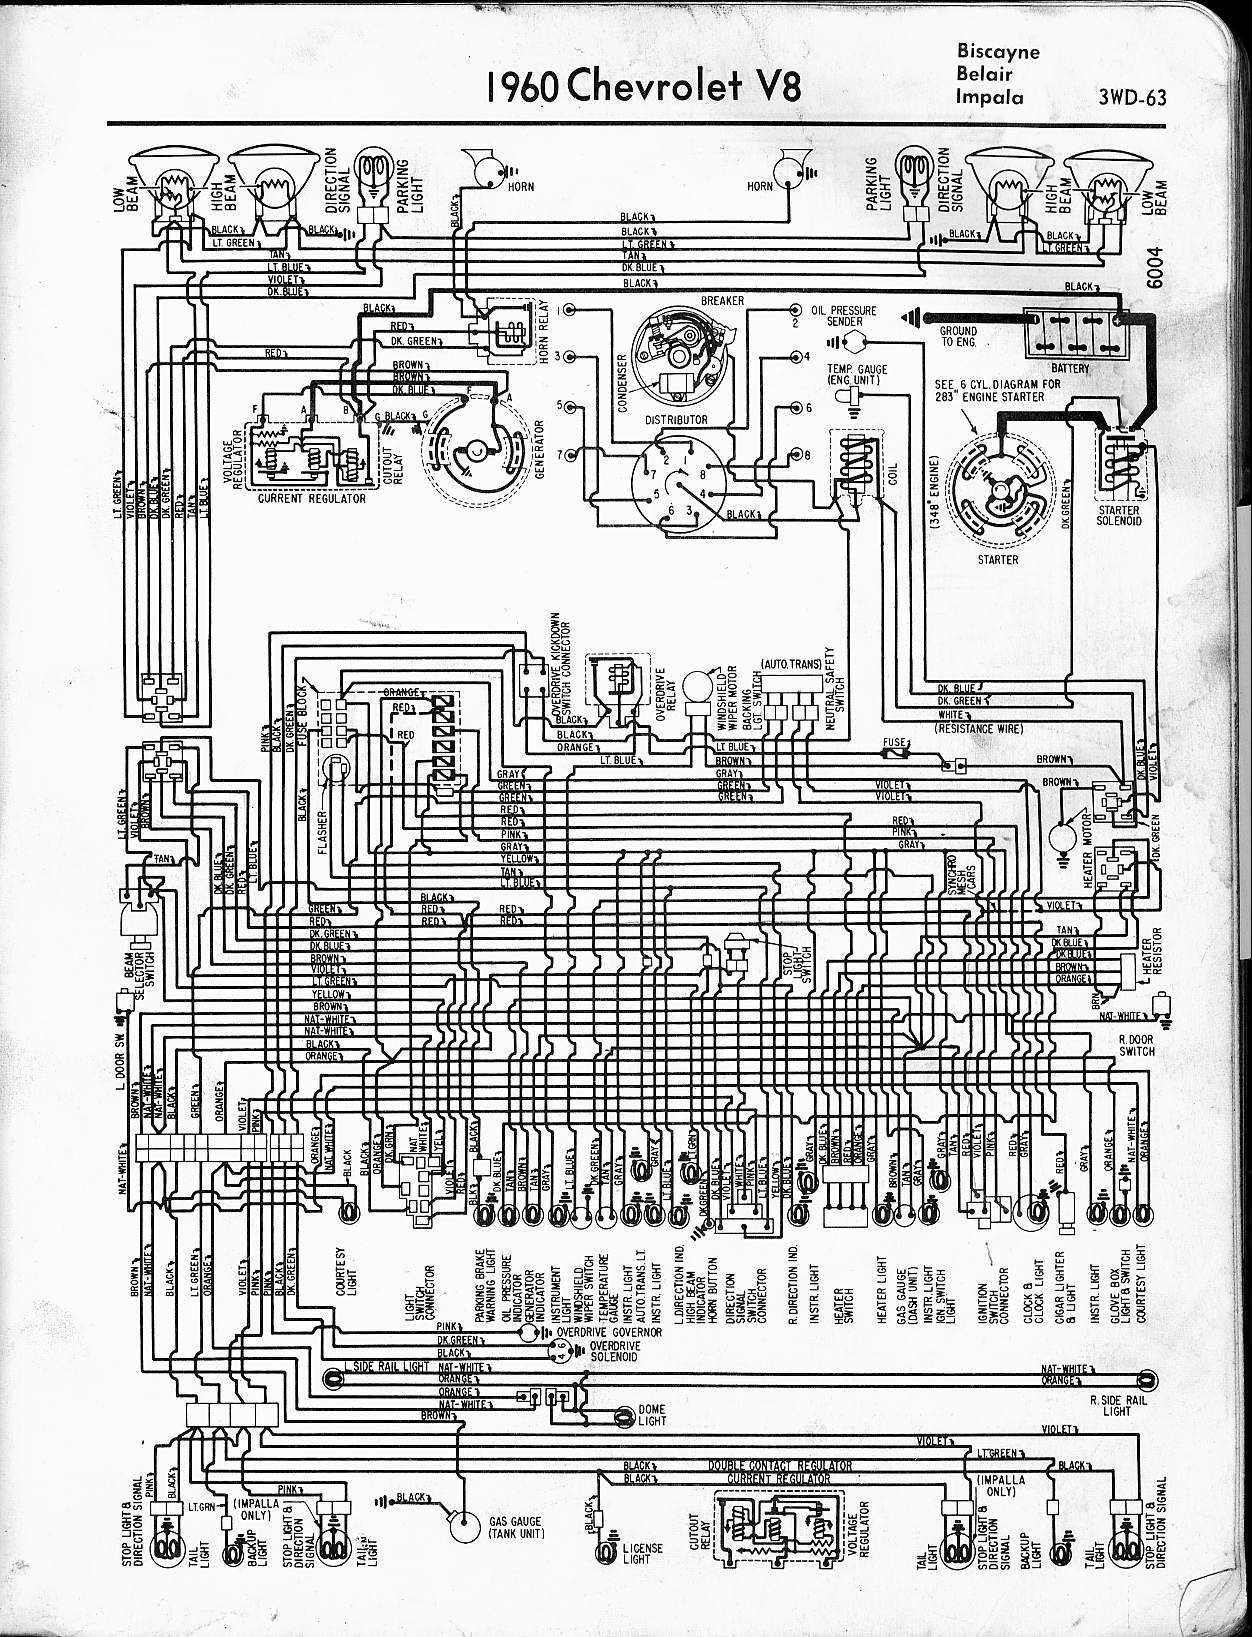 1959 impala radio wiring diagram schematics wiring diagrams u2022 rh seniorlivinguniversity co 1966 Impala Wiring Diagram 1967 Camaro Wiring Diagram